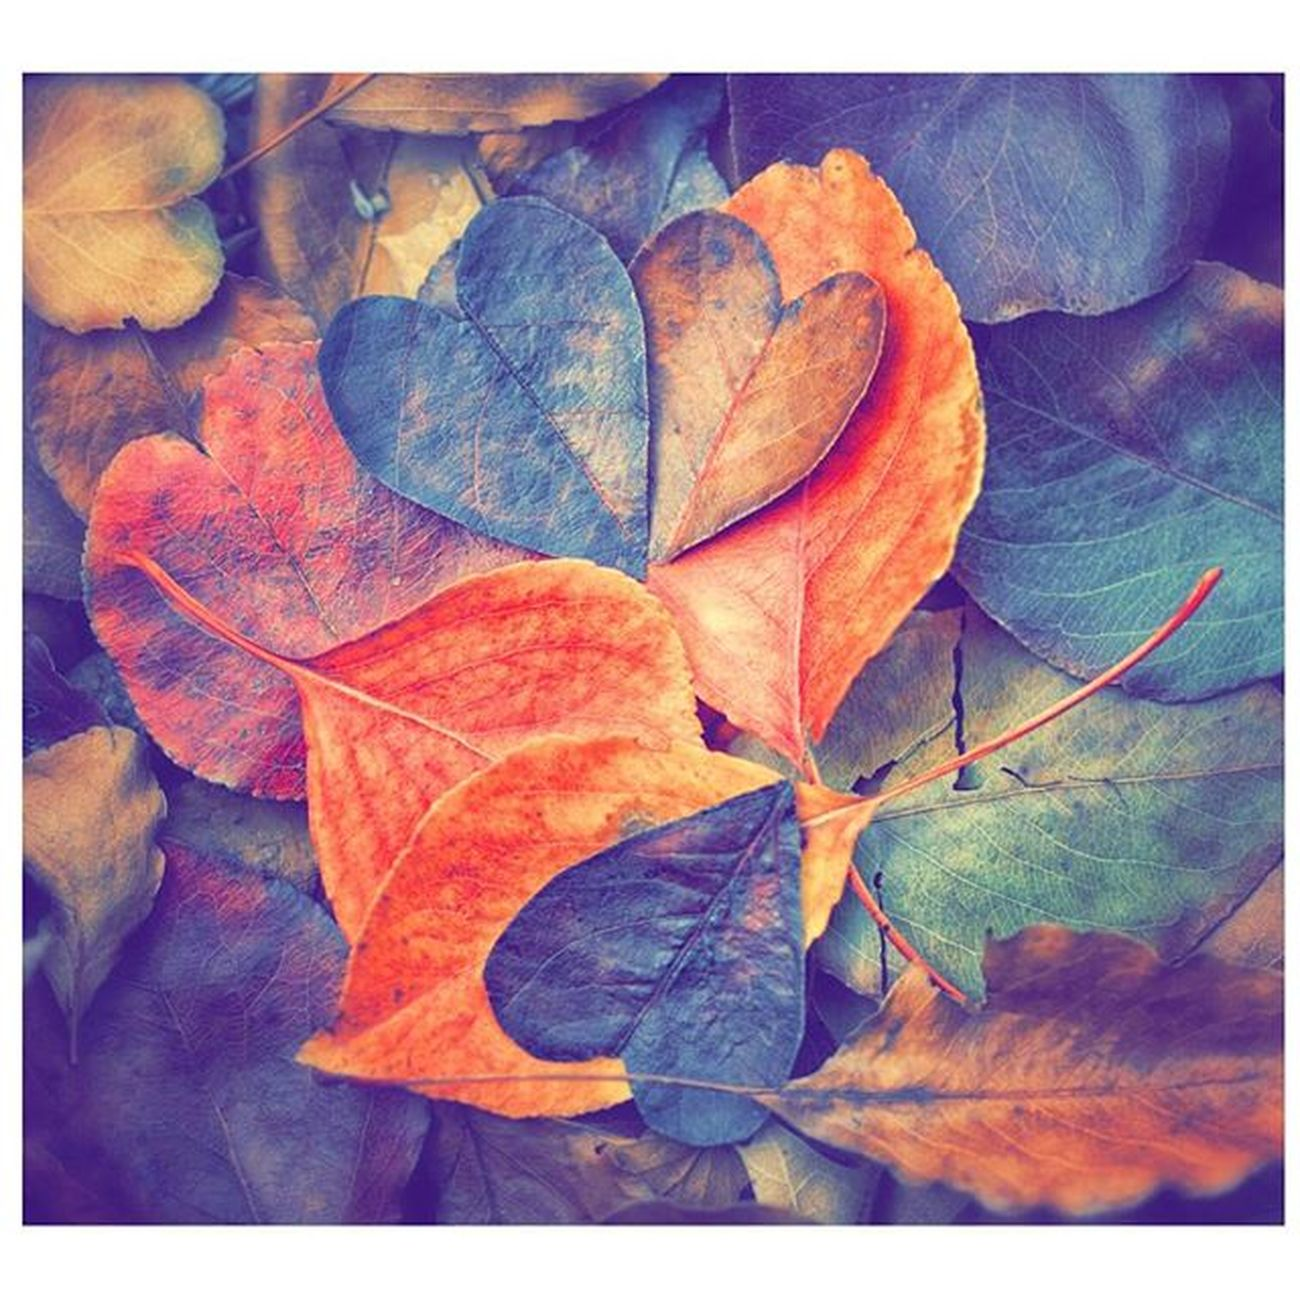 Colours Foglie Fogliesecche Colour Colours Autumn Autumnlife Autumnleaves Nature Naturelovers Naturel Naturelove Life Picture Picoftheday Pic Followforfollow Follow4follow Likeforlike Like4like Follow Followmenow